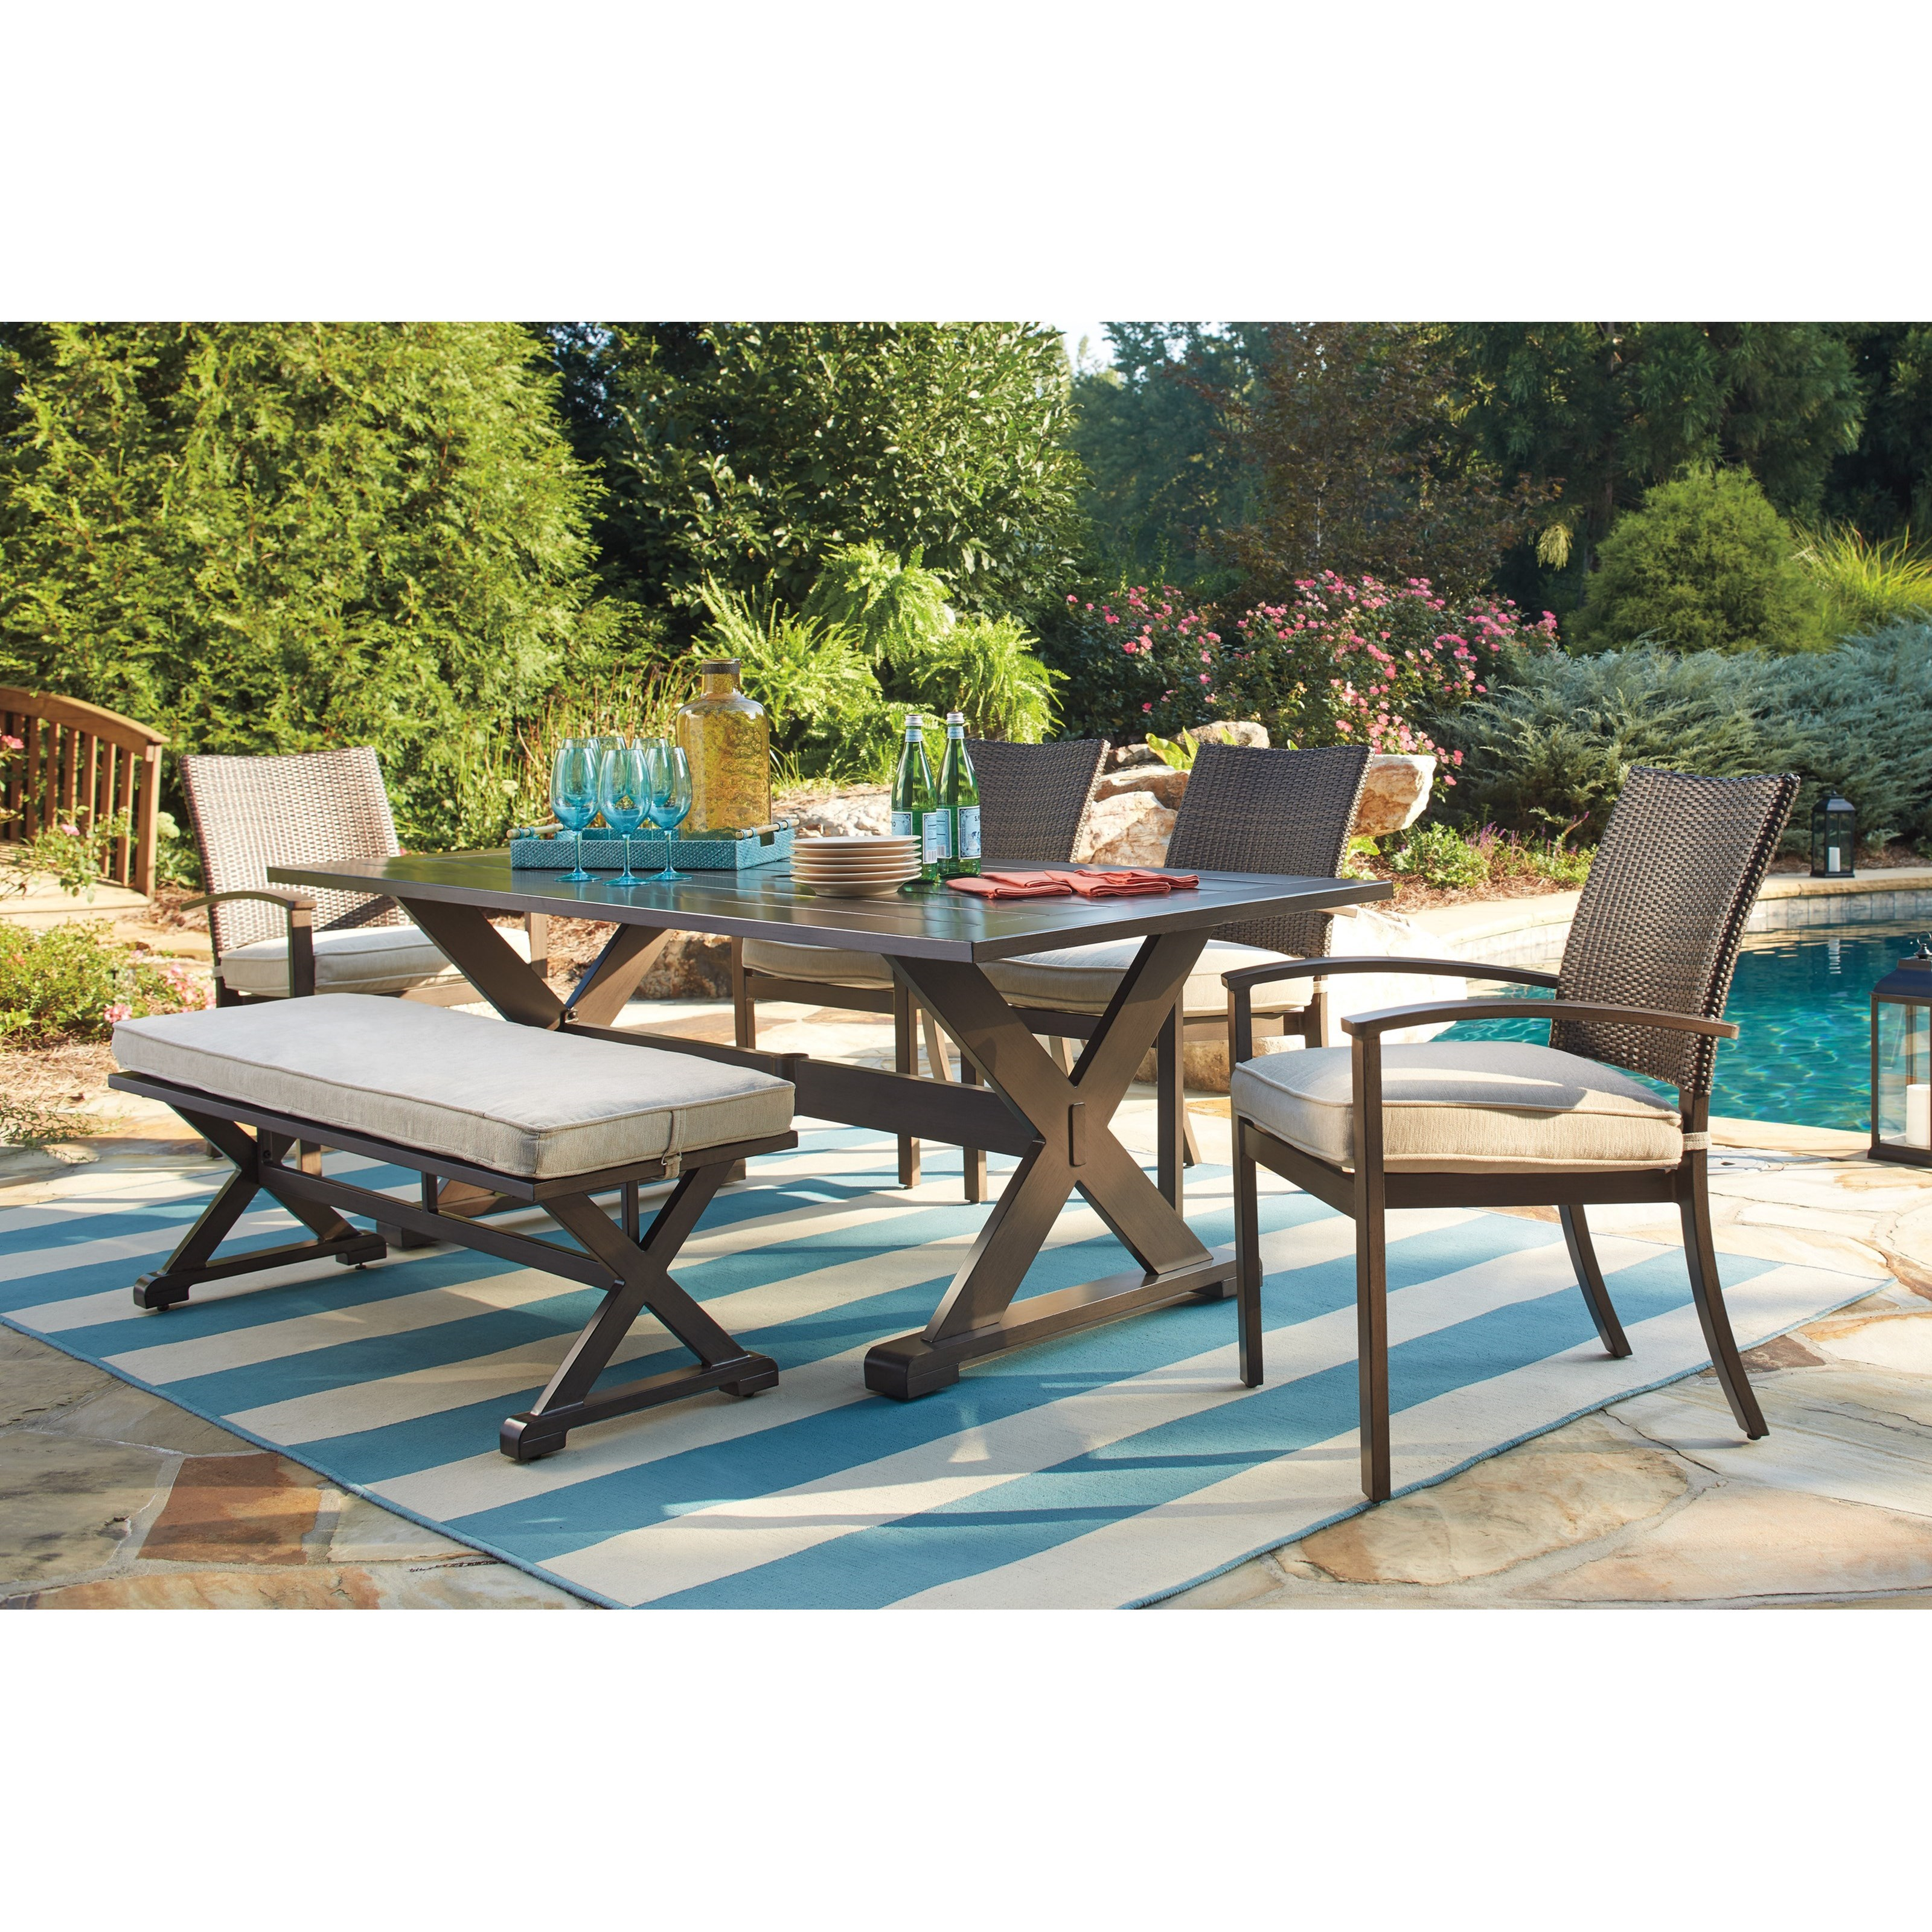 Signature Design By Ashley Moresdale Outdoor Bench With Cushion Royal Furniture Outdoor Benches